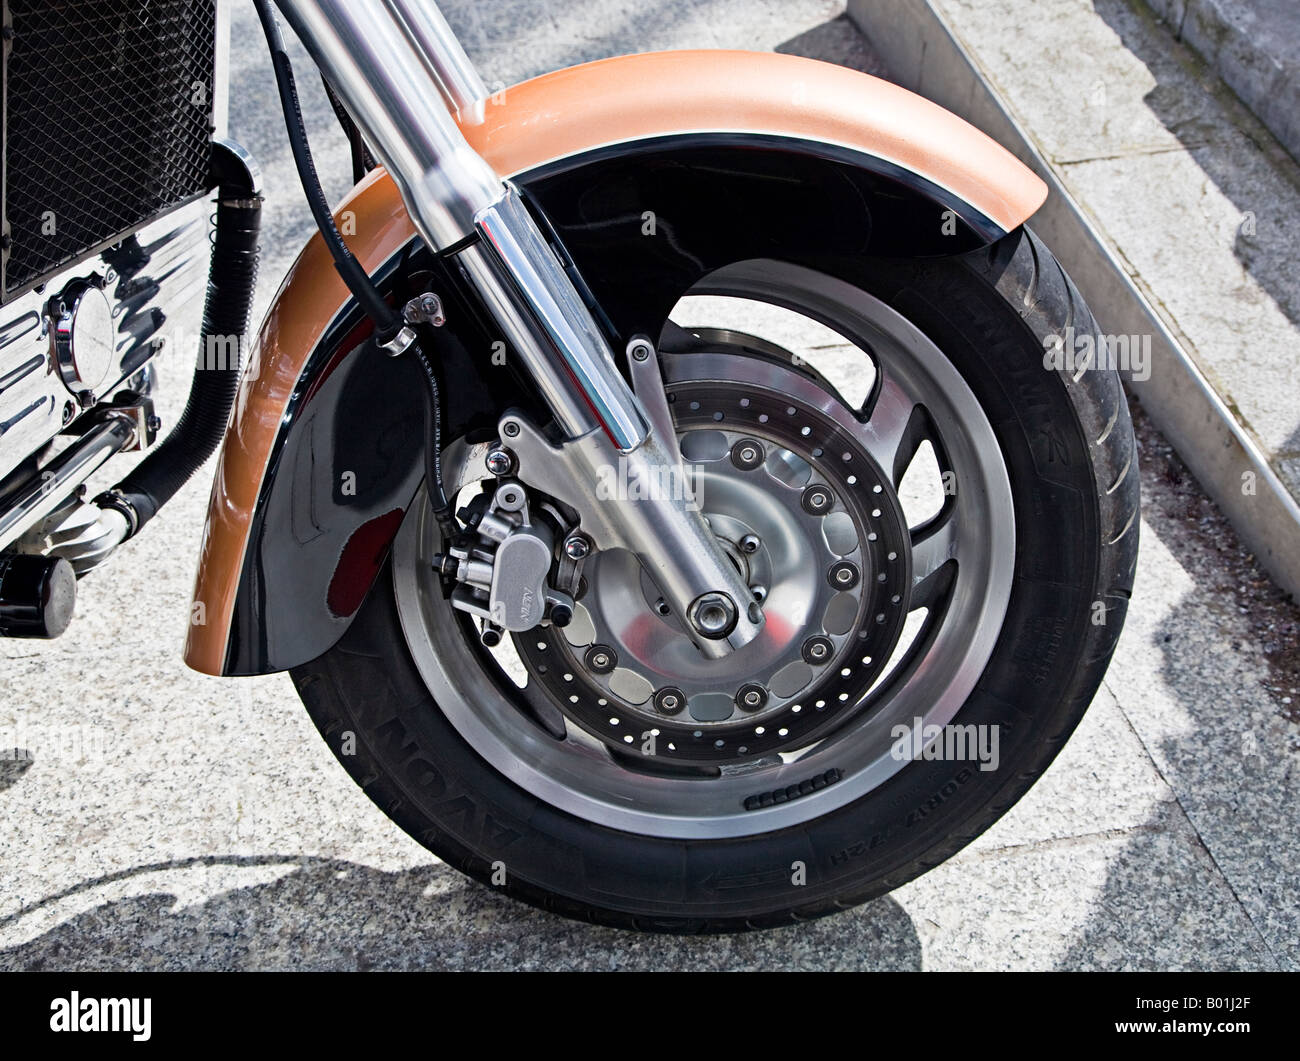 Honda Goldwing front wheel Detail - Stock Image